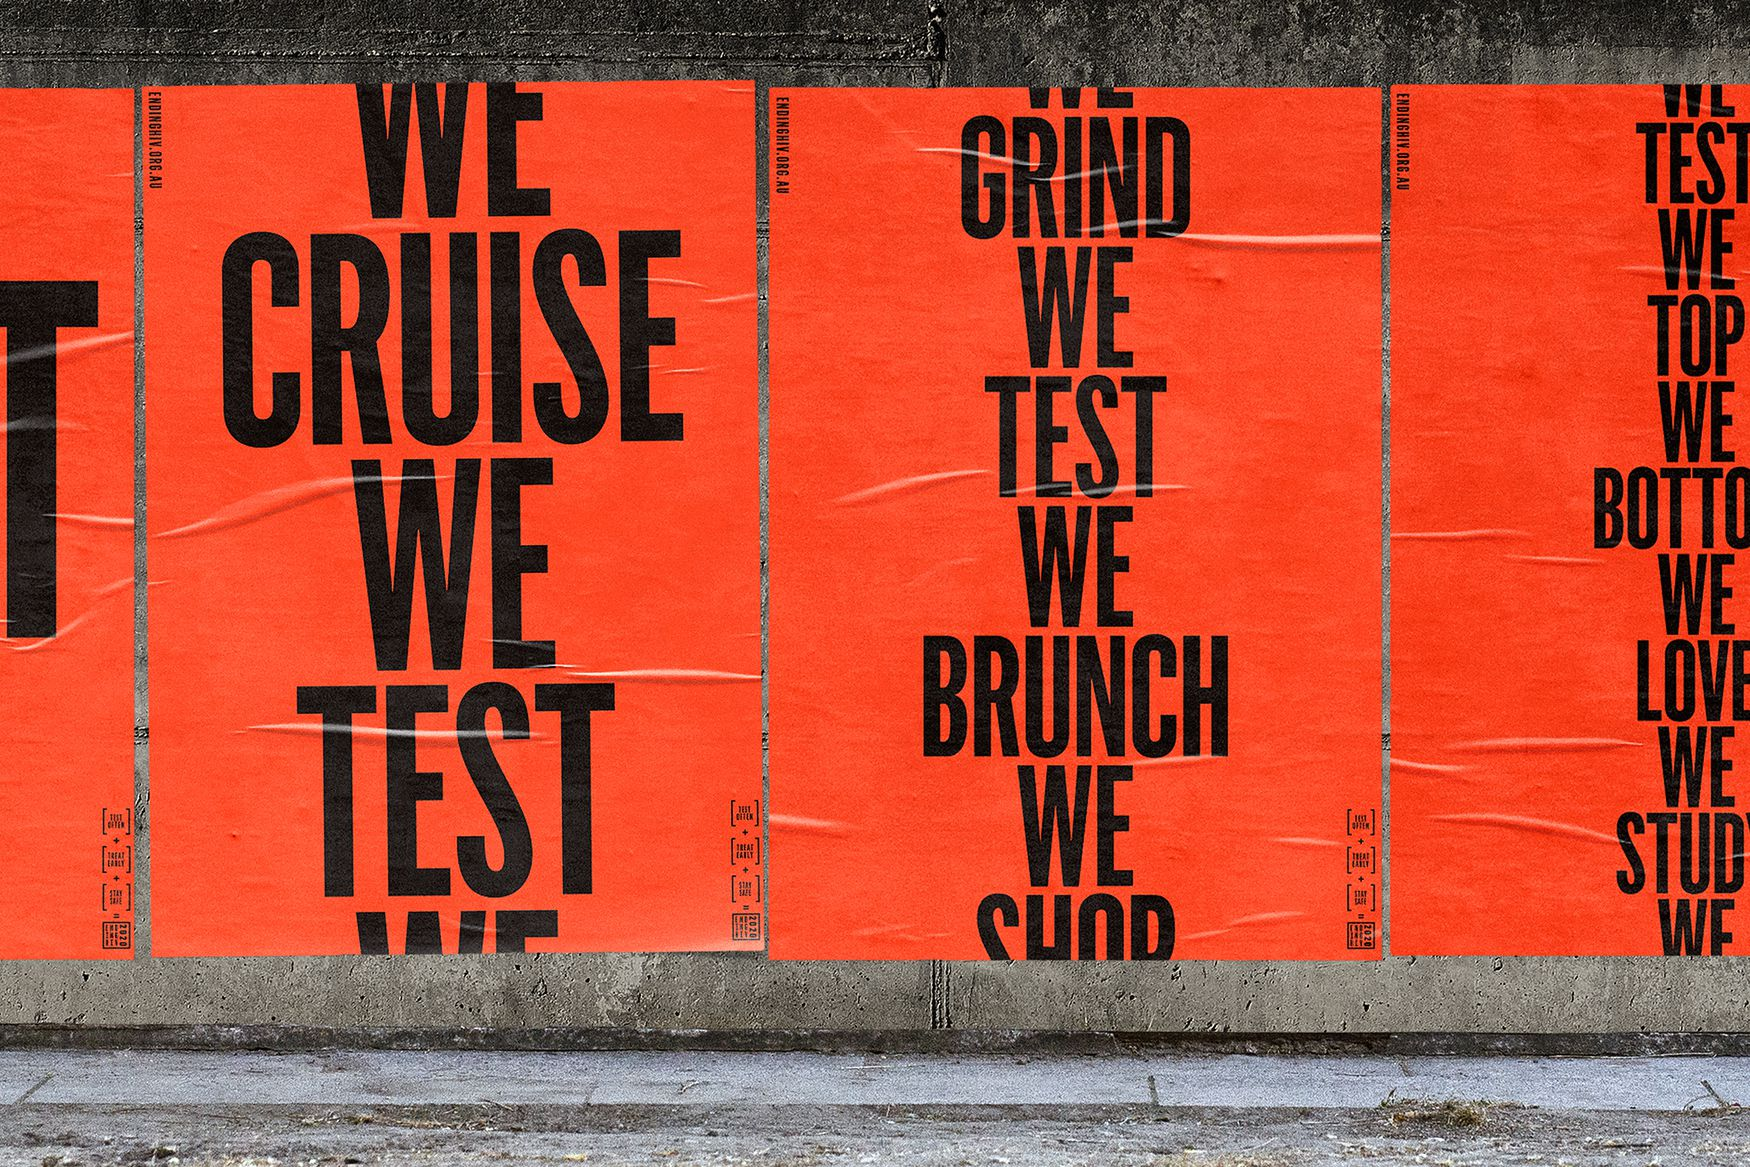 We Brunch, We Grind, We Test